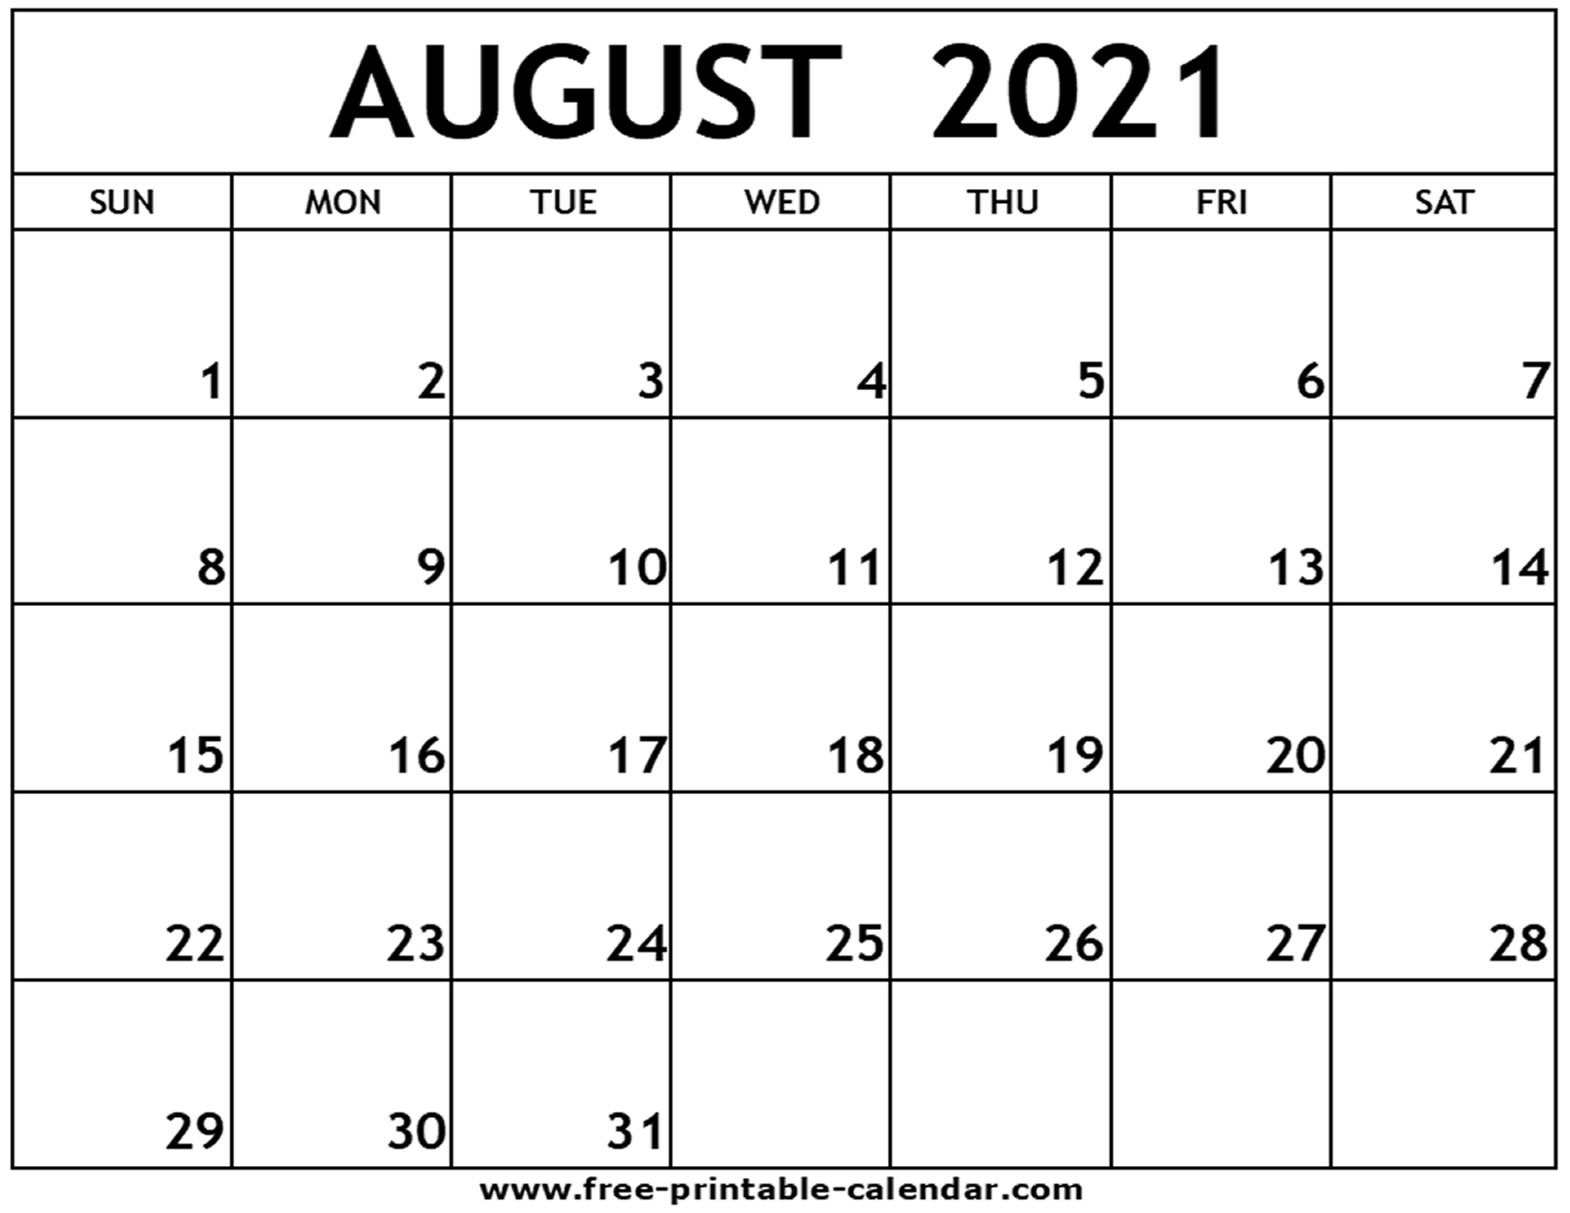 Take August 2021 Printable Calendar With Lines